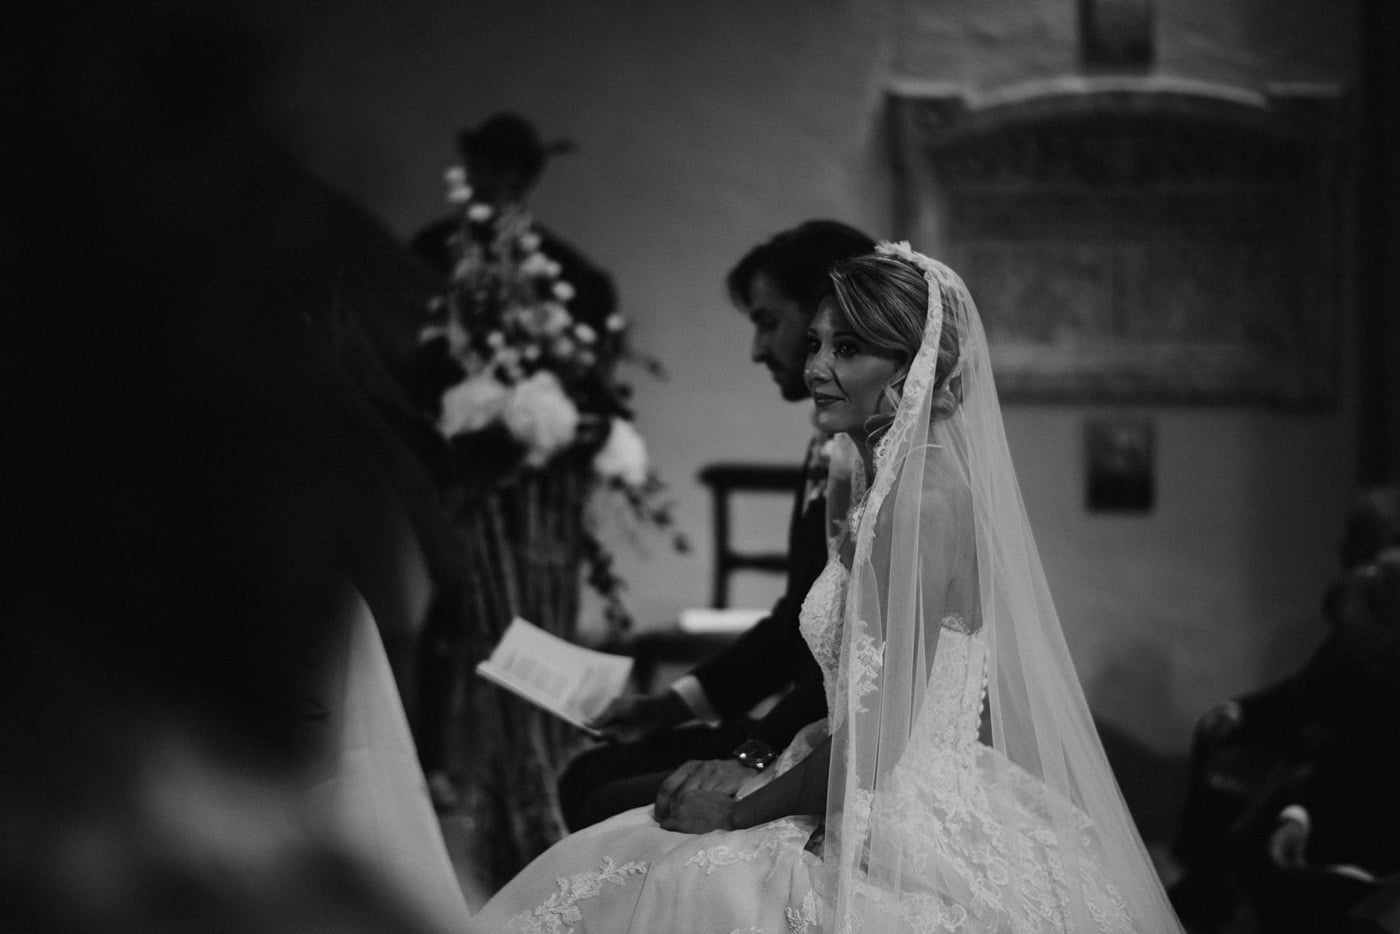 Andrea & Francesca | Wedding at Borgo San Luigi by Federico Pannacci 38